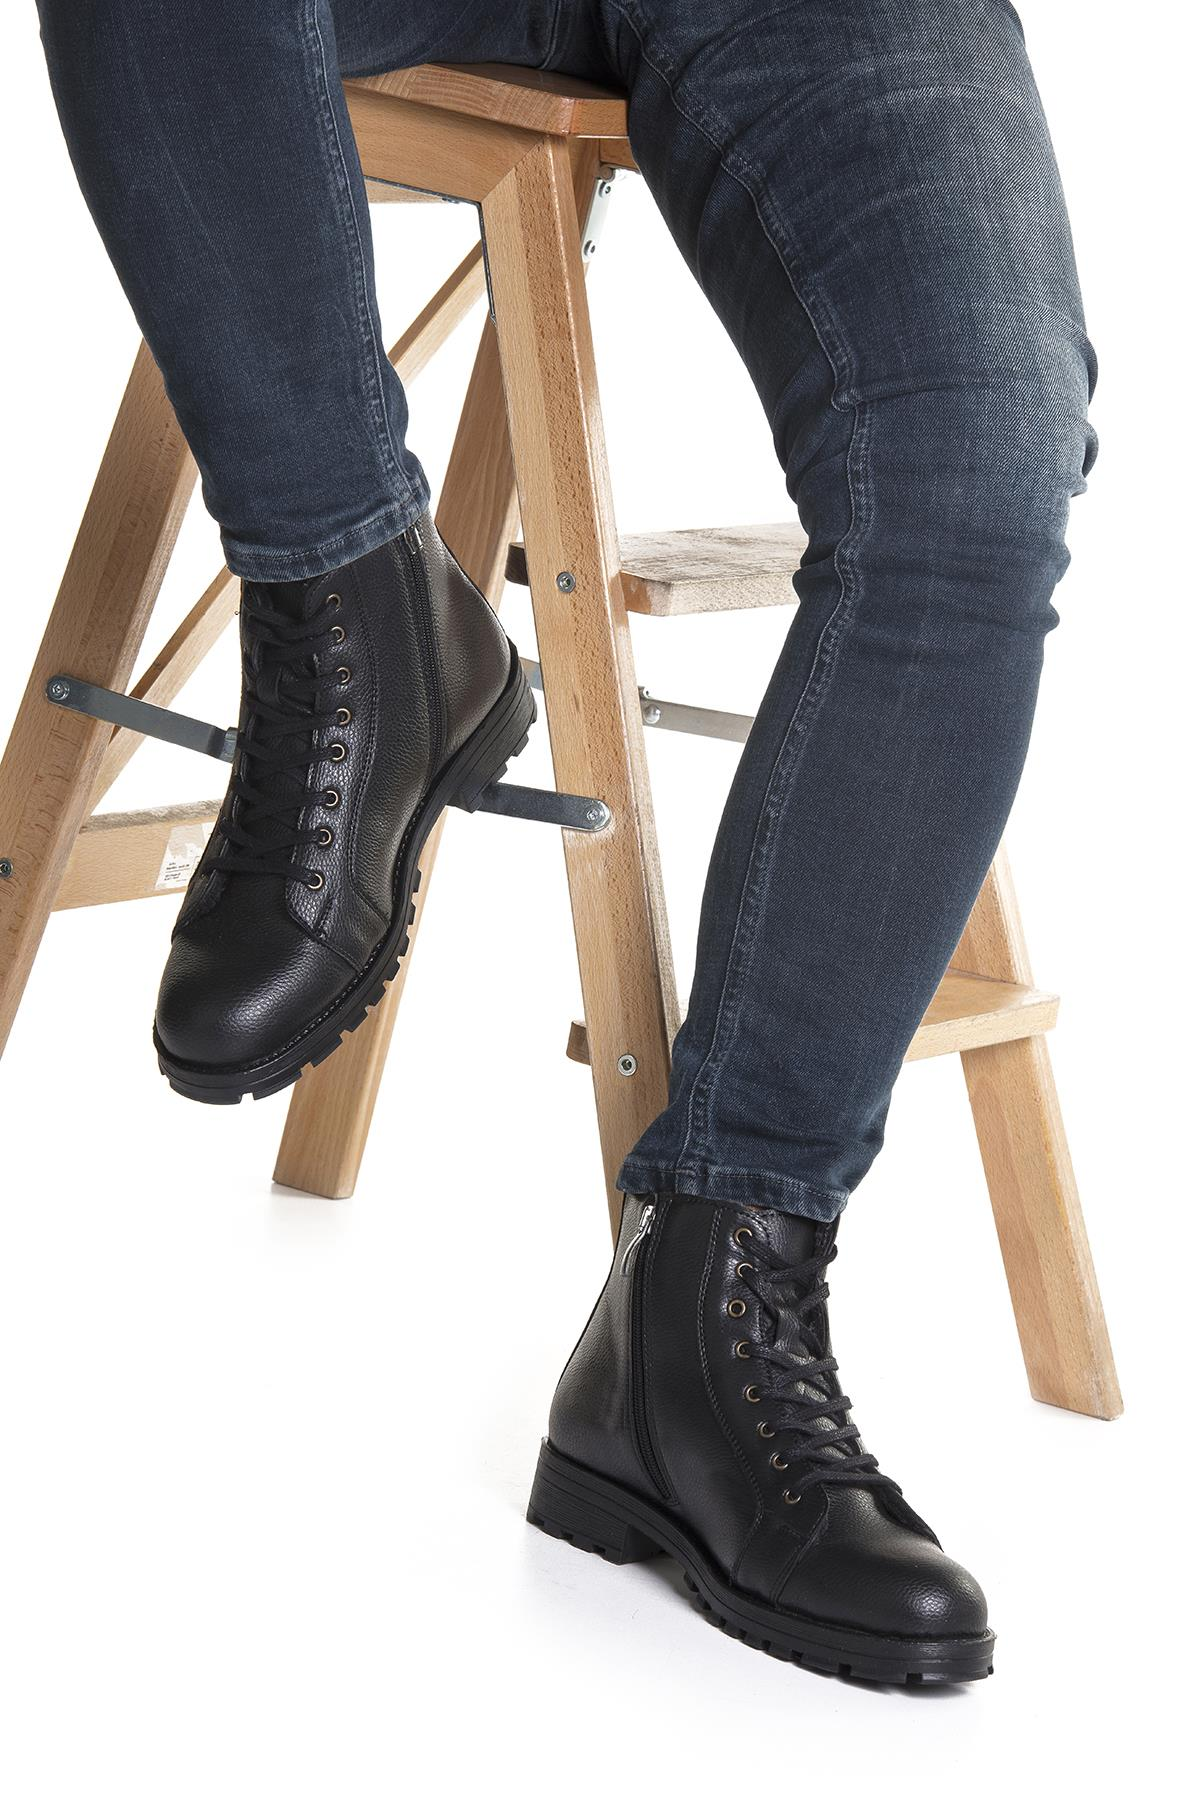 Men's Lace-up Inner Furry Cold Proof Black Boots